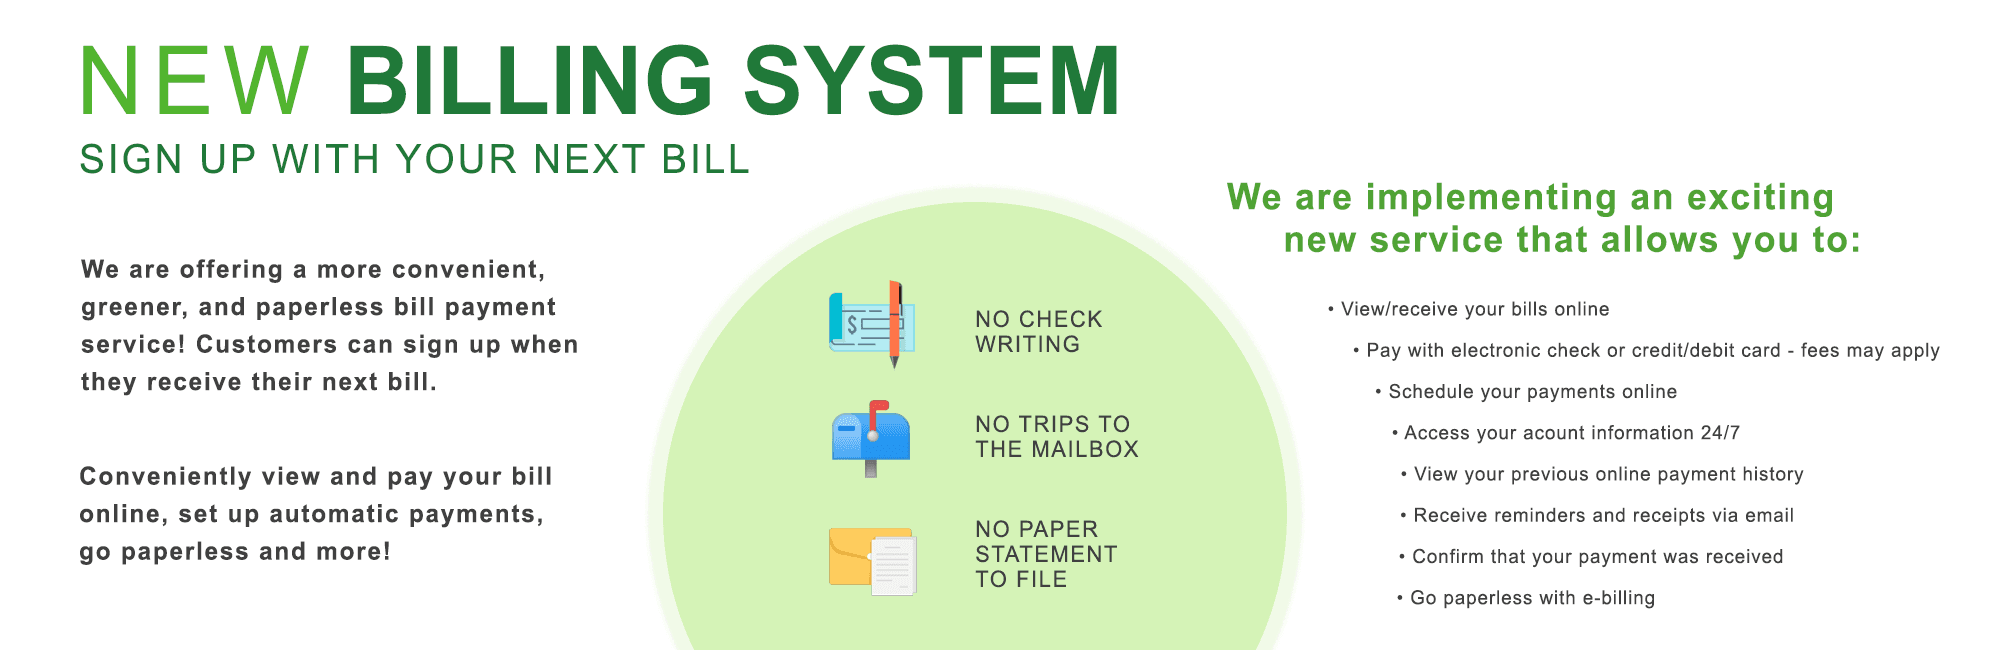 New Billing System Website Graphic